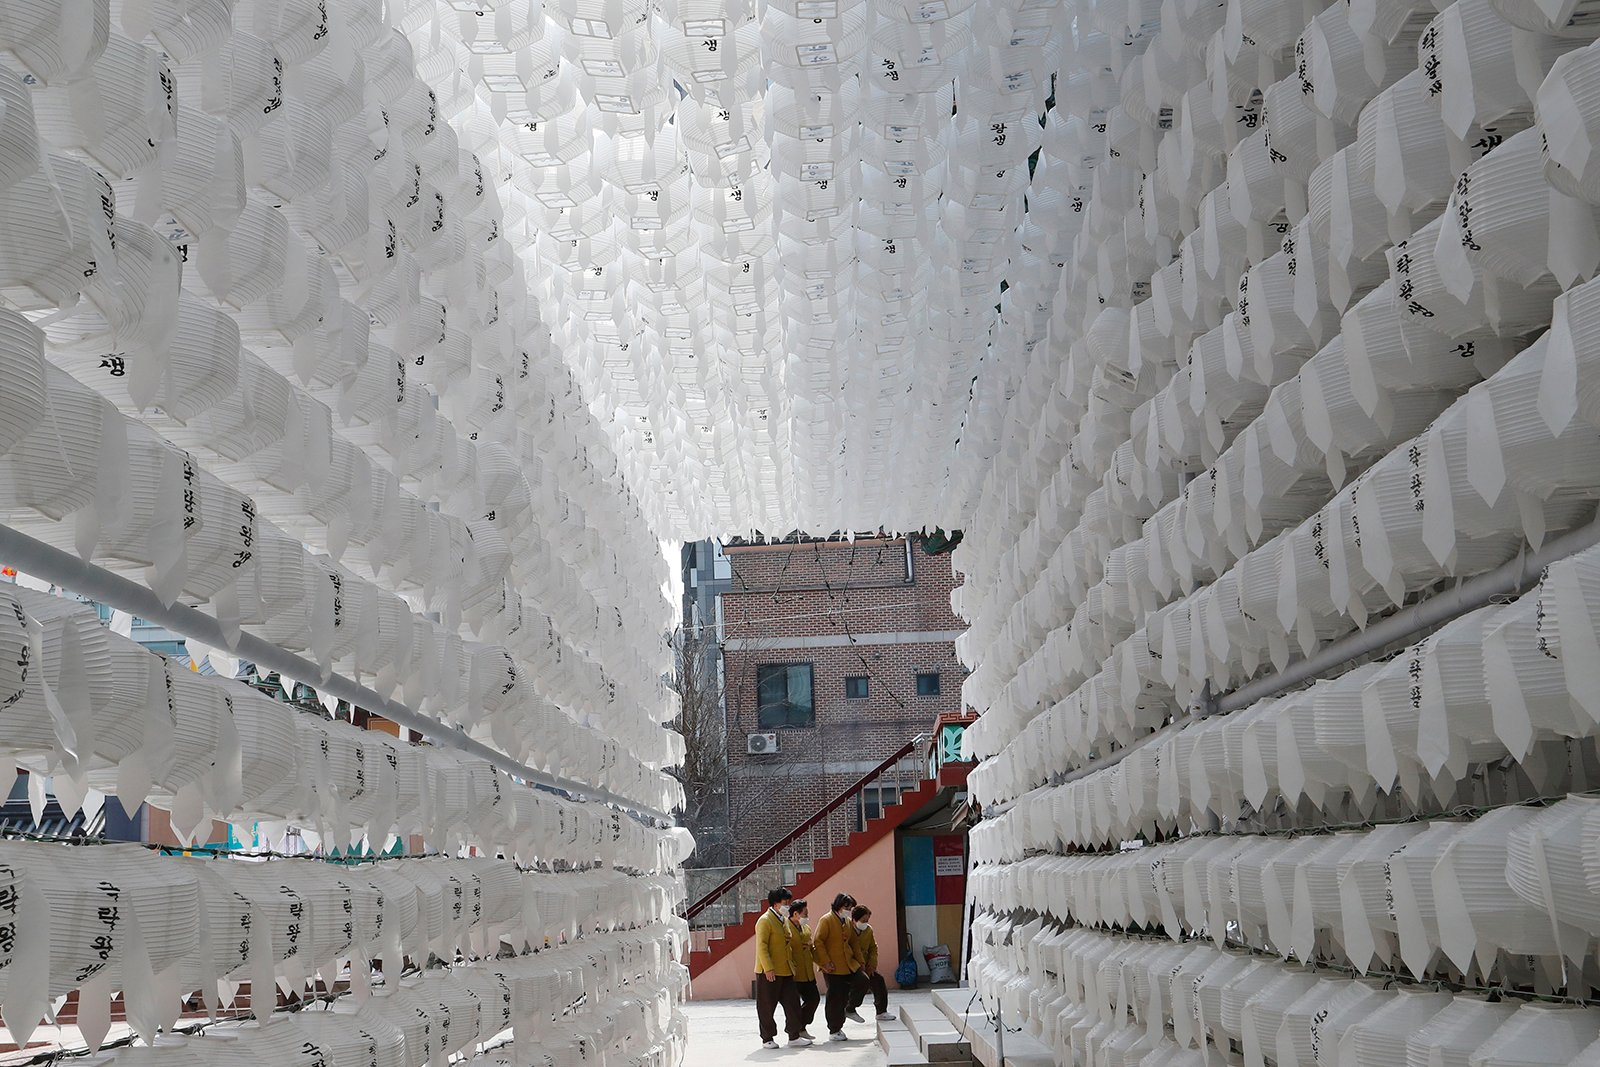 People pass by lanterns for the upcoming celebration of Buddha's birthday (May 19) at Jogyesa temple in Seoul, South Korea, Tuesday, March 9, 2021. (AP Photo/Ahn Young-joon)